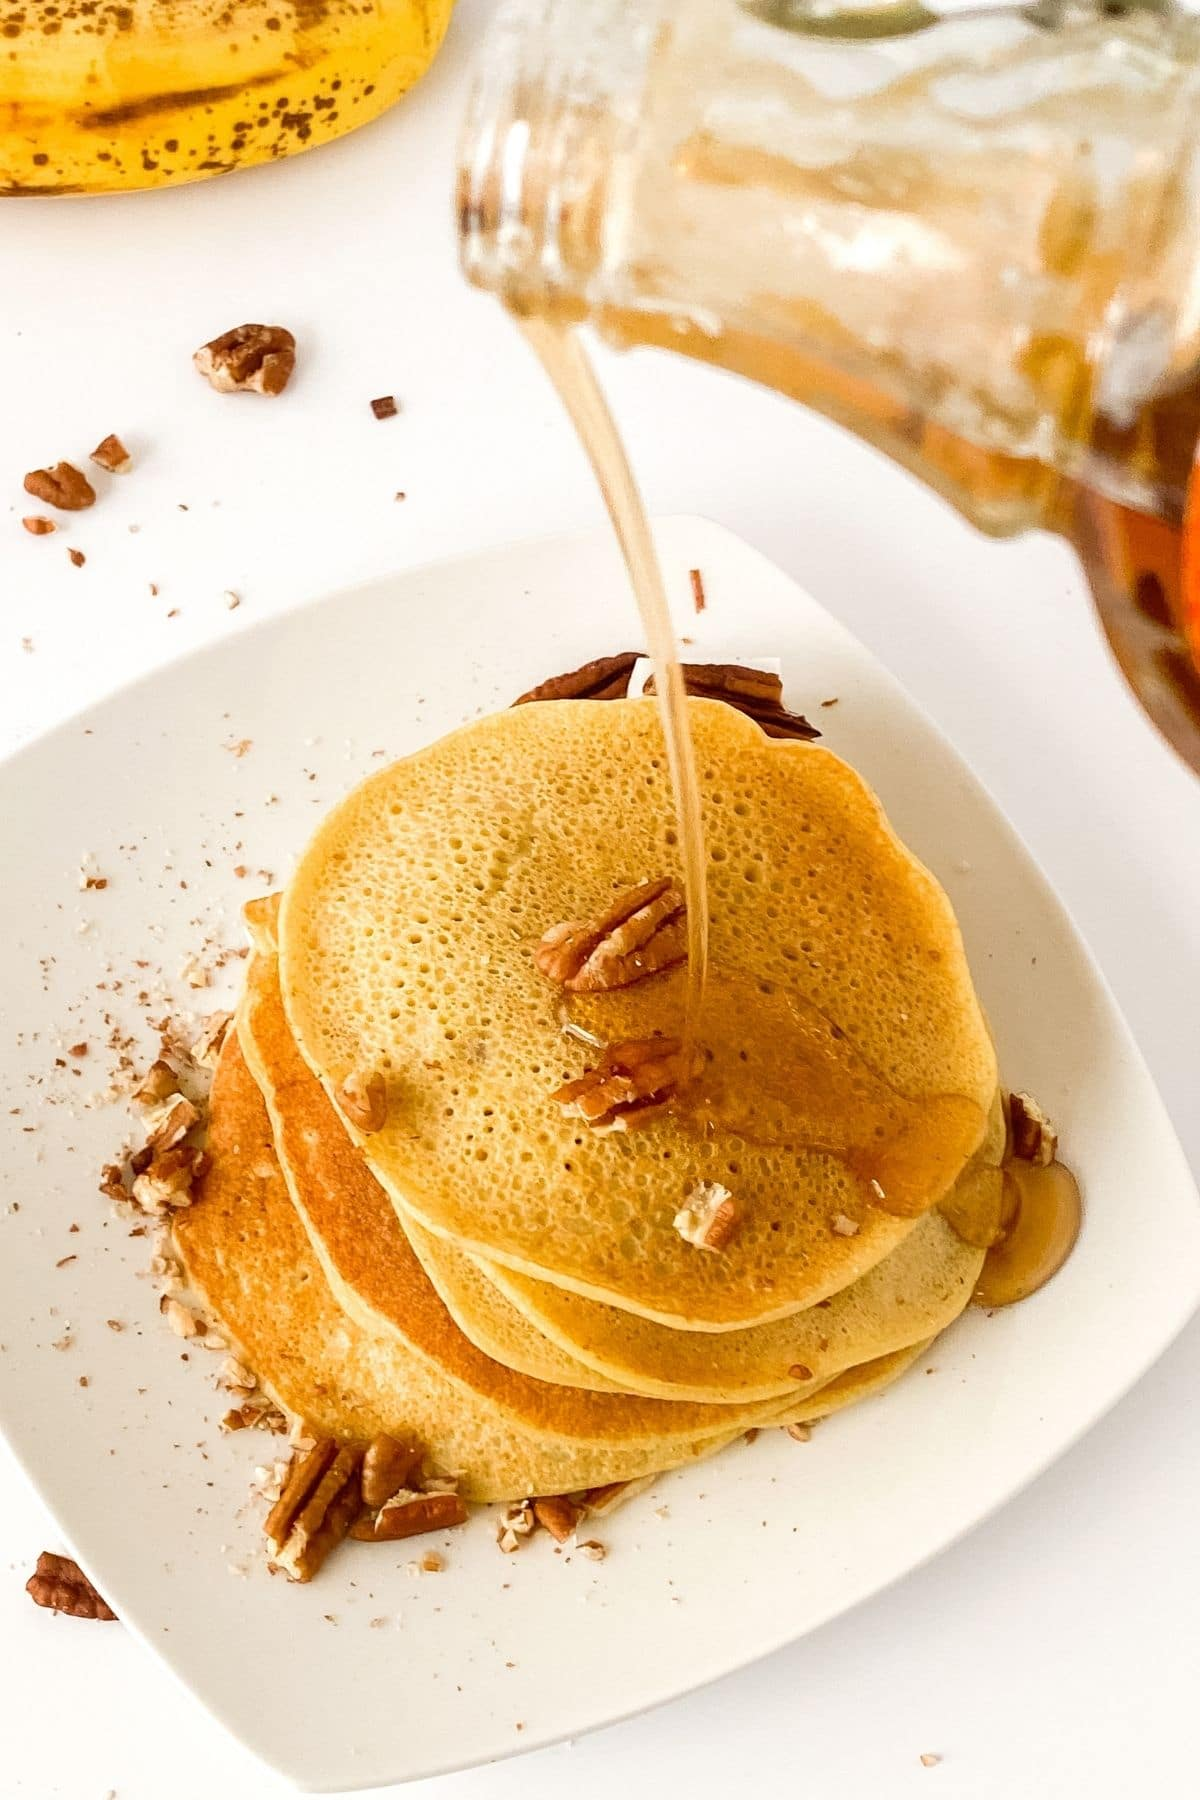 Pouring syrup onto pancakes